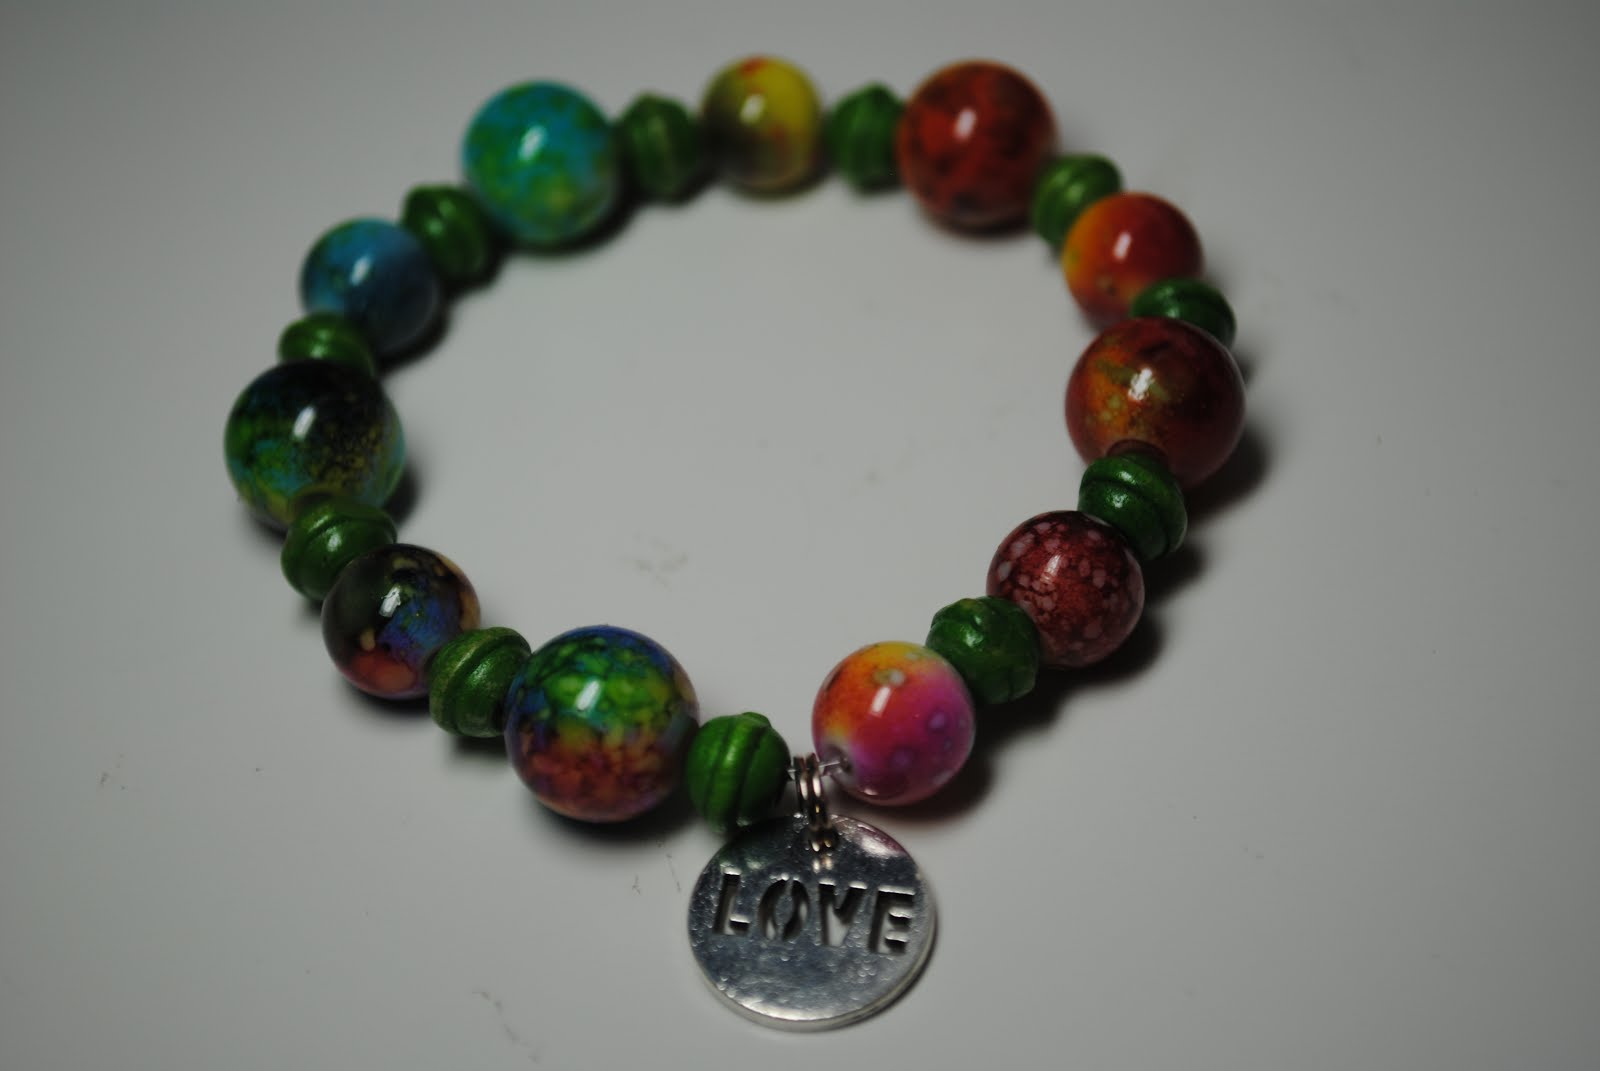 Around the World Bracelet with Love Charm - Rainbow/Green $12